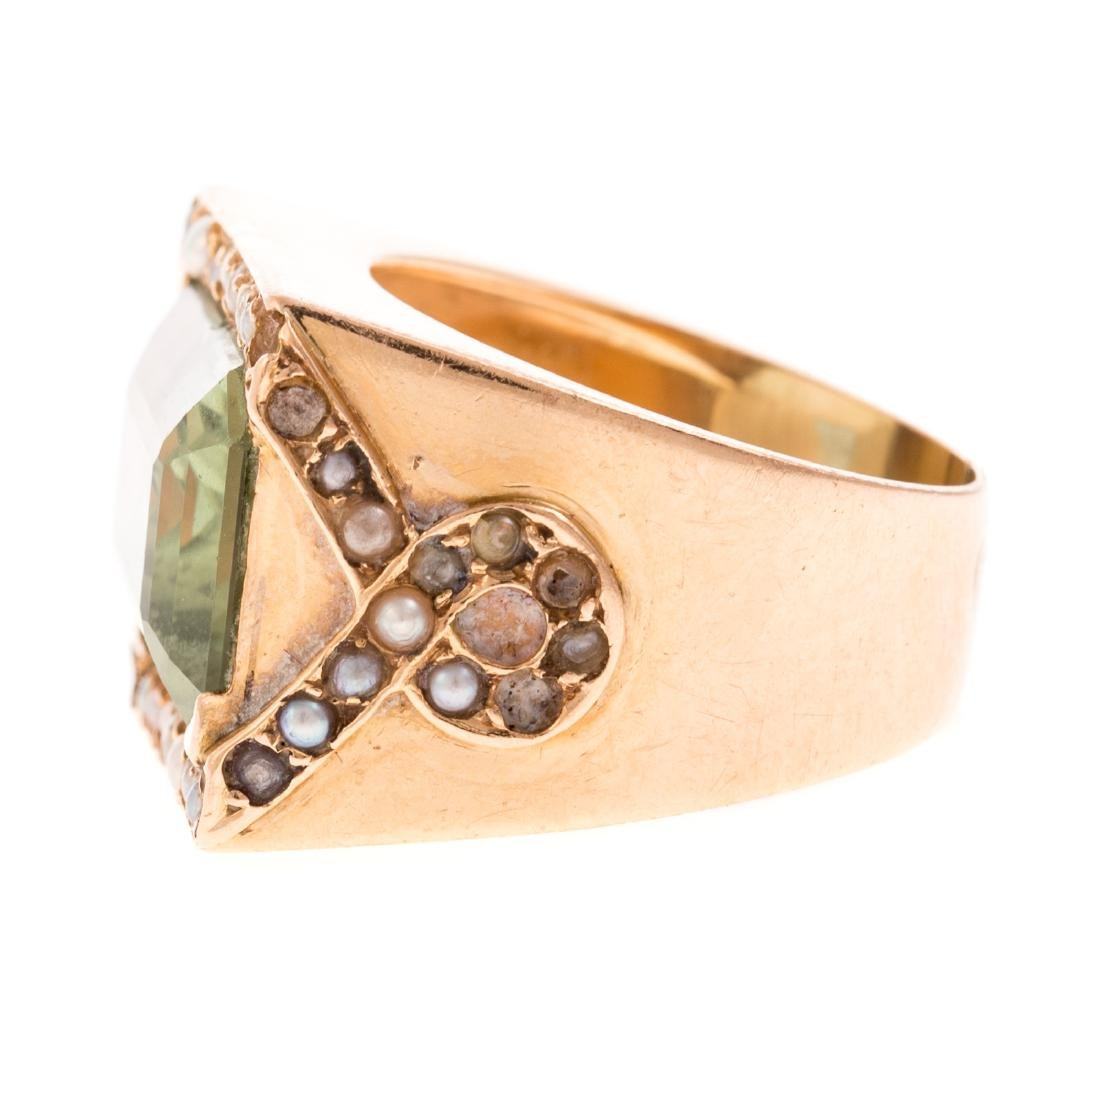 A Ladies 14K Prasiolite & Seed Pearl Ring - 3